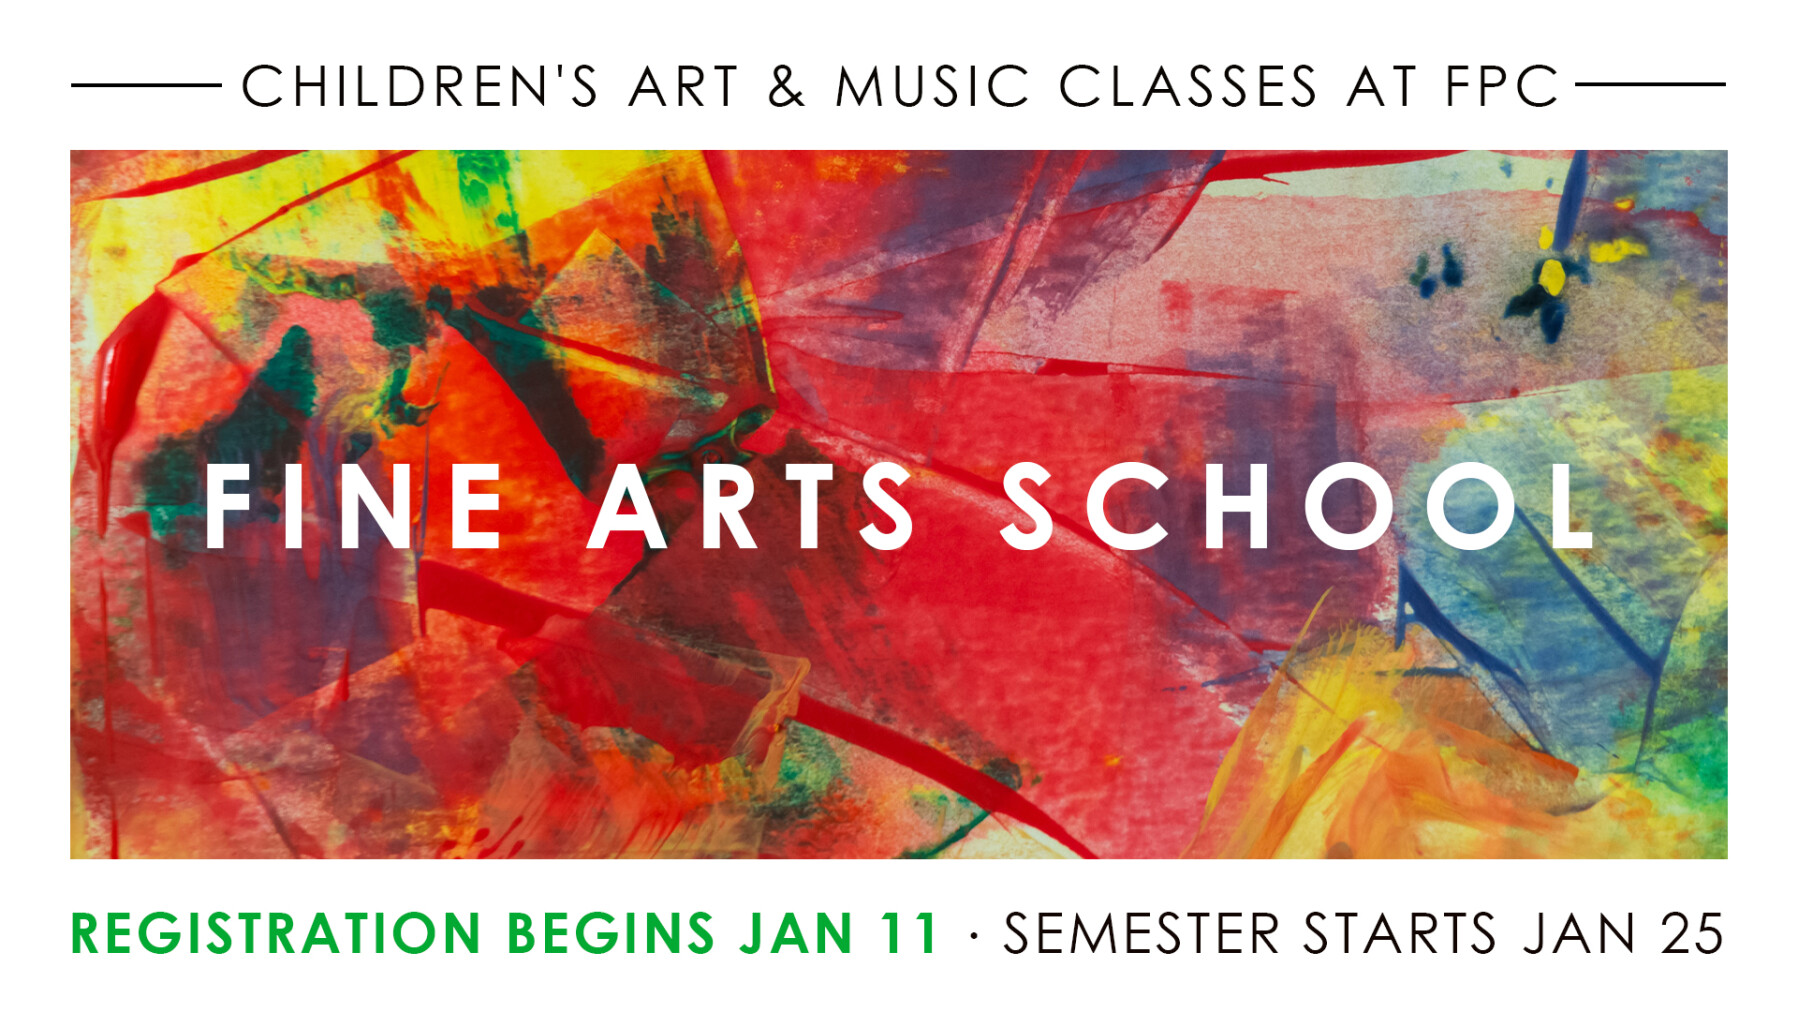 Fine Arts School Registration